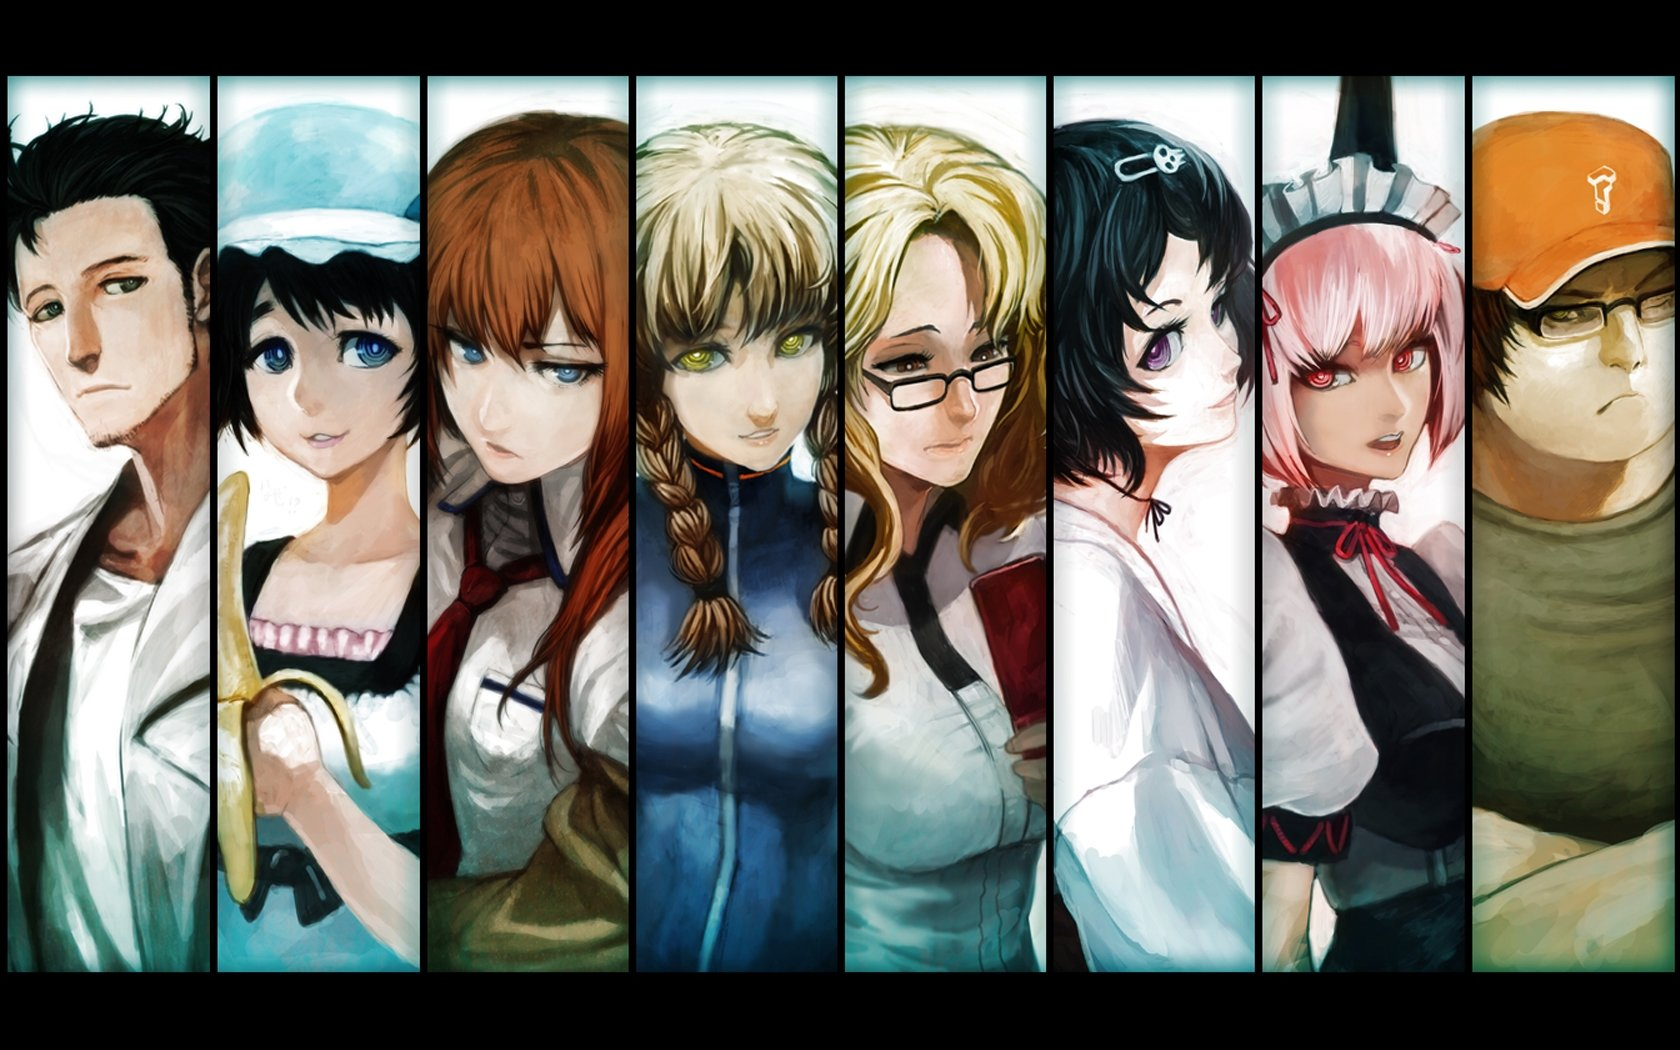 Download hd 1680x1050 Steins Gate PC background ID:315835 for free